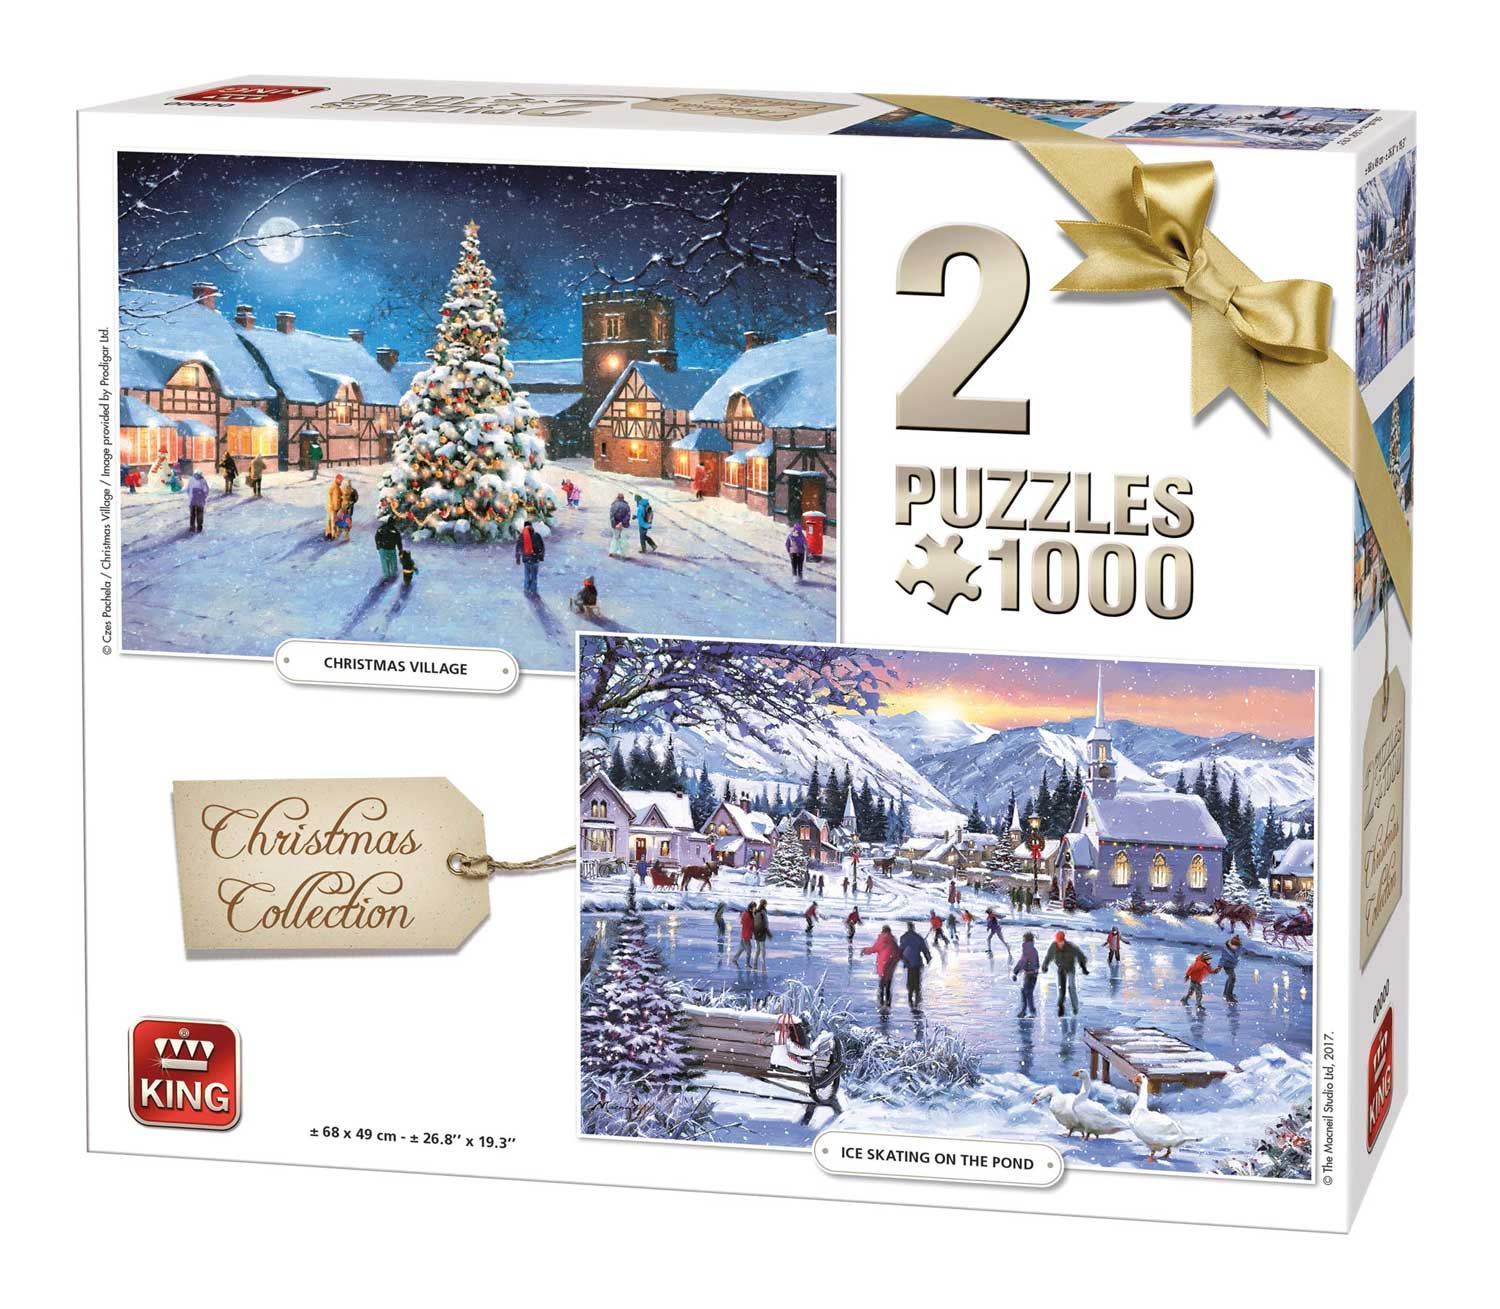 King 2 In 1 Christmas Collection Jigsaw Puzzle (1000 Pieces)